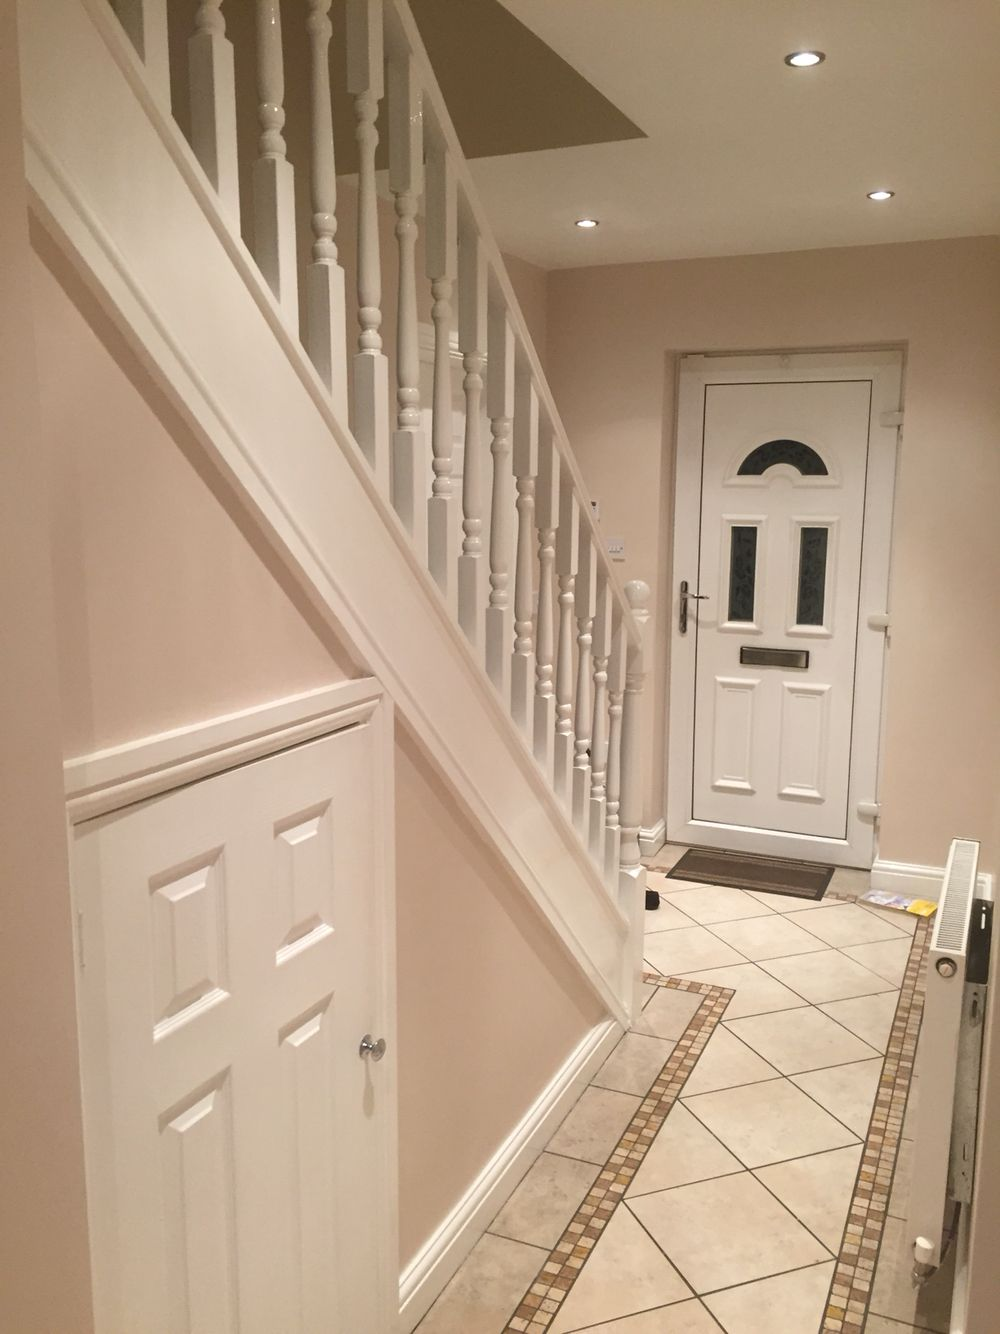 Hallway dulux natural hessian our first home for Dulux paint room ideas